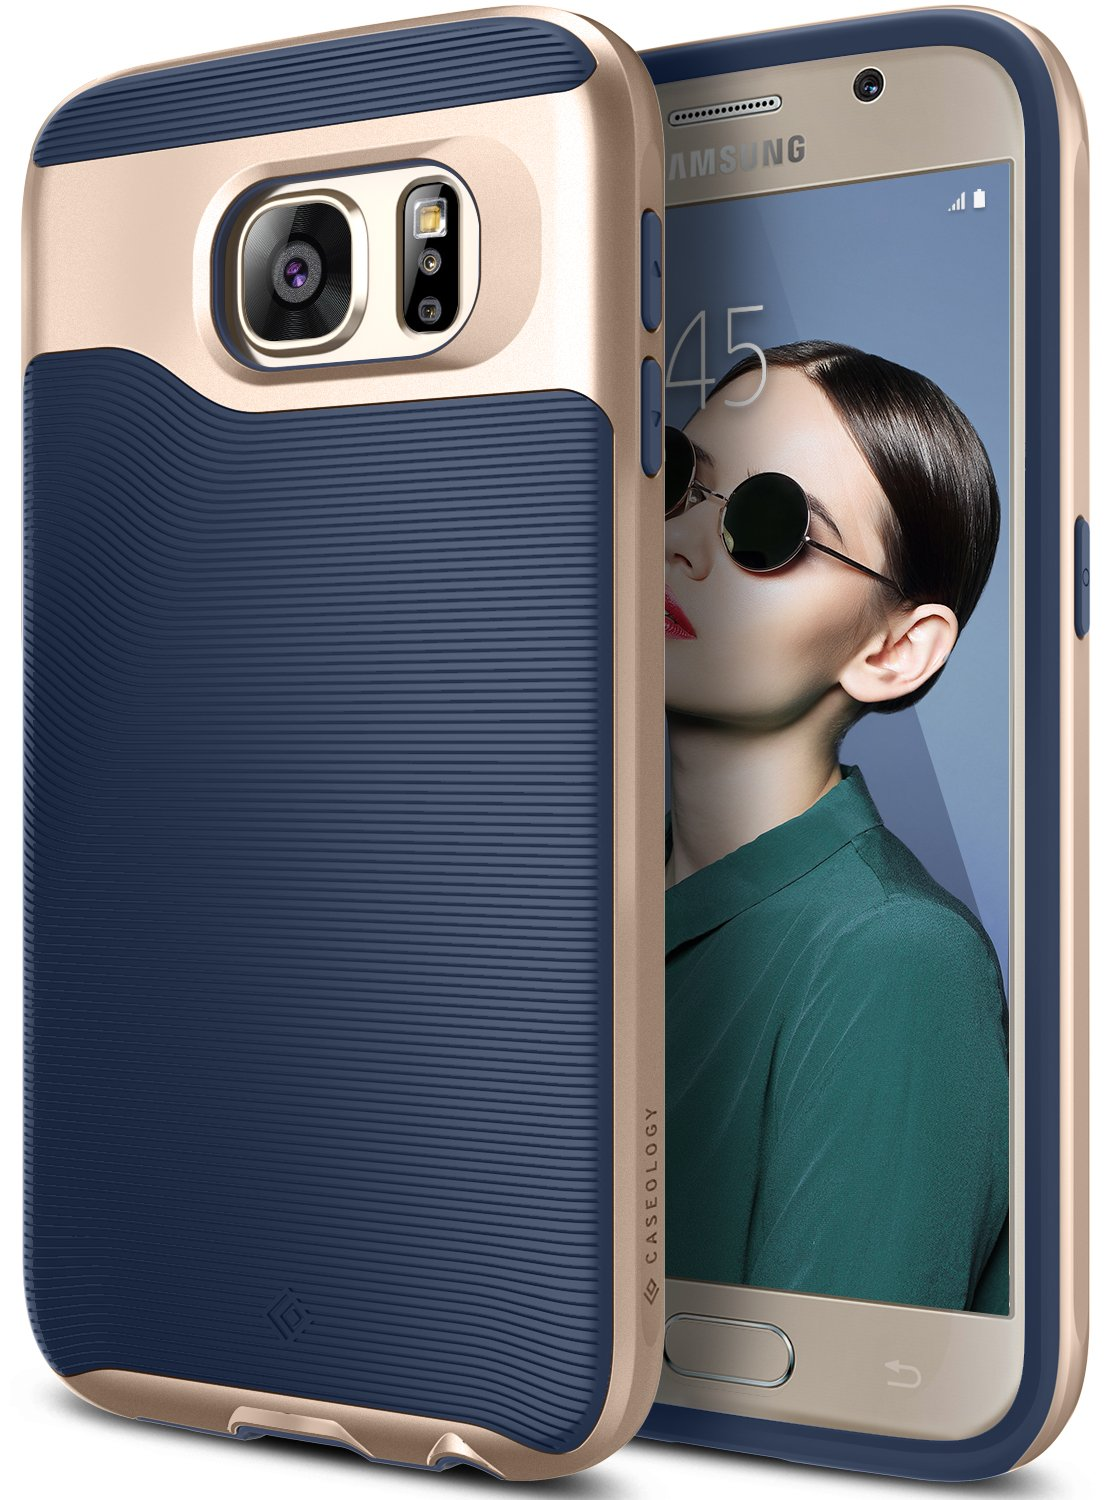 Amazon galaxy s6 case caseology wavelength series slim amazon galaxy s6 case caseology wavelength series slim dual layer protective textured grip corner cushion design for samsung galaxy s6 navy blue sciox Gallery